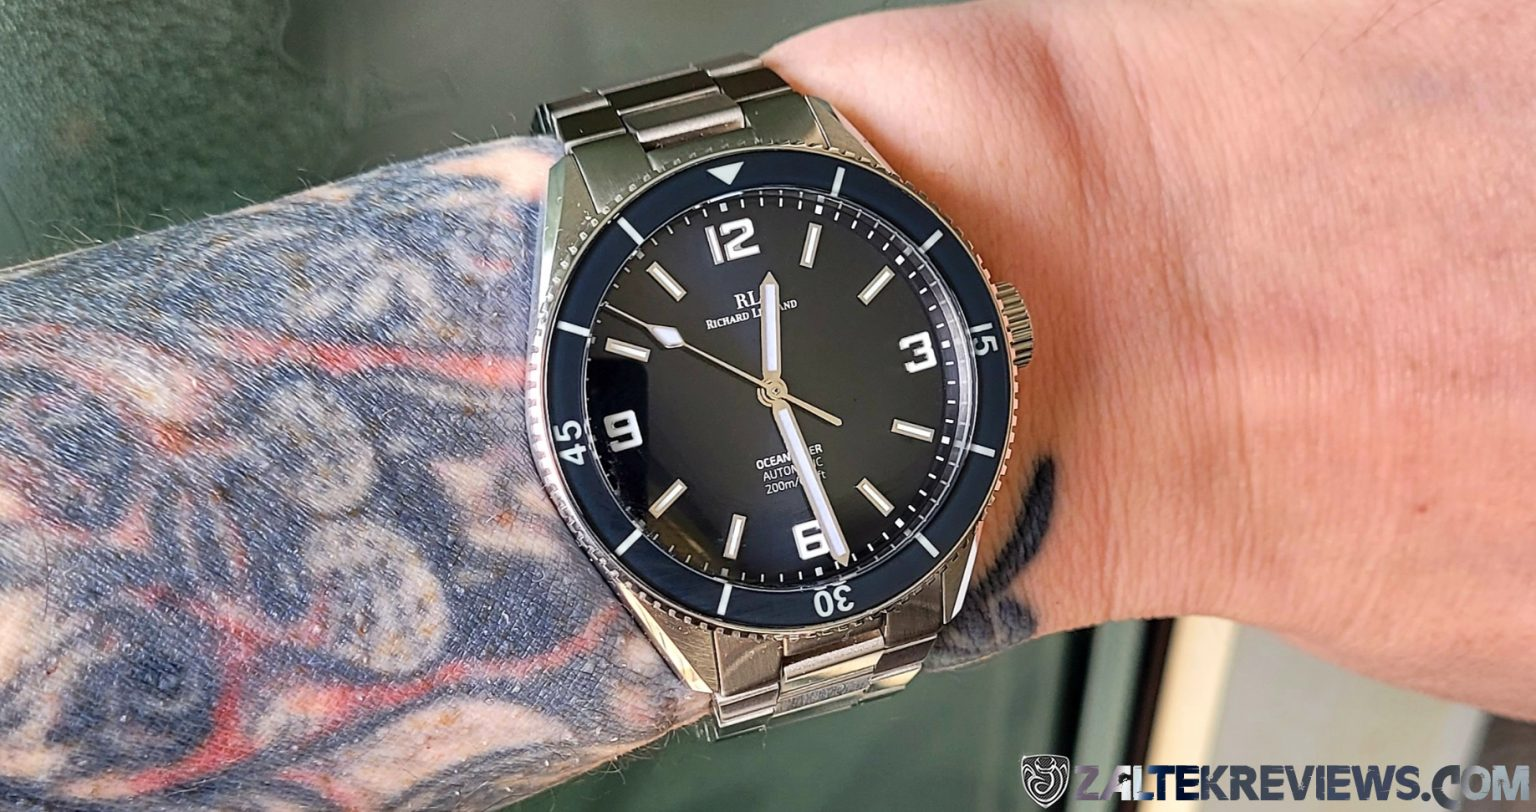 RLG Oceanfarer Dive Watch Review